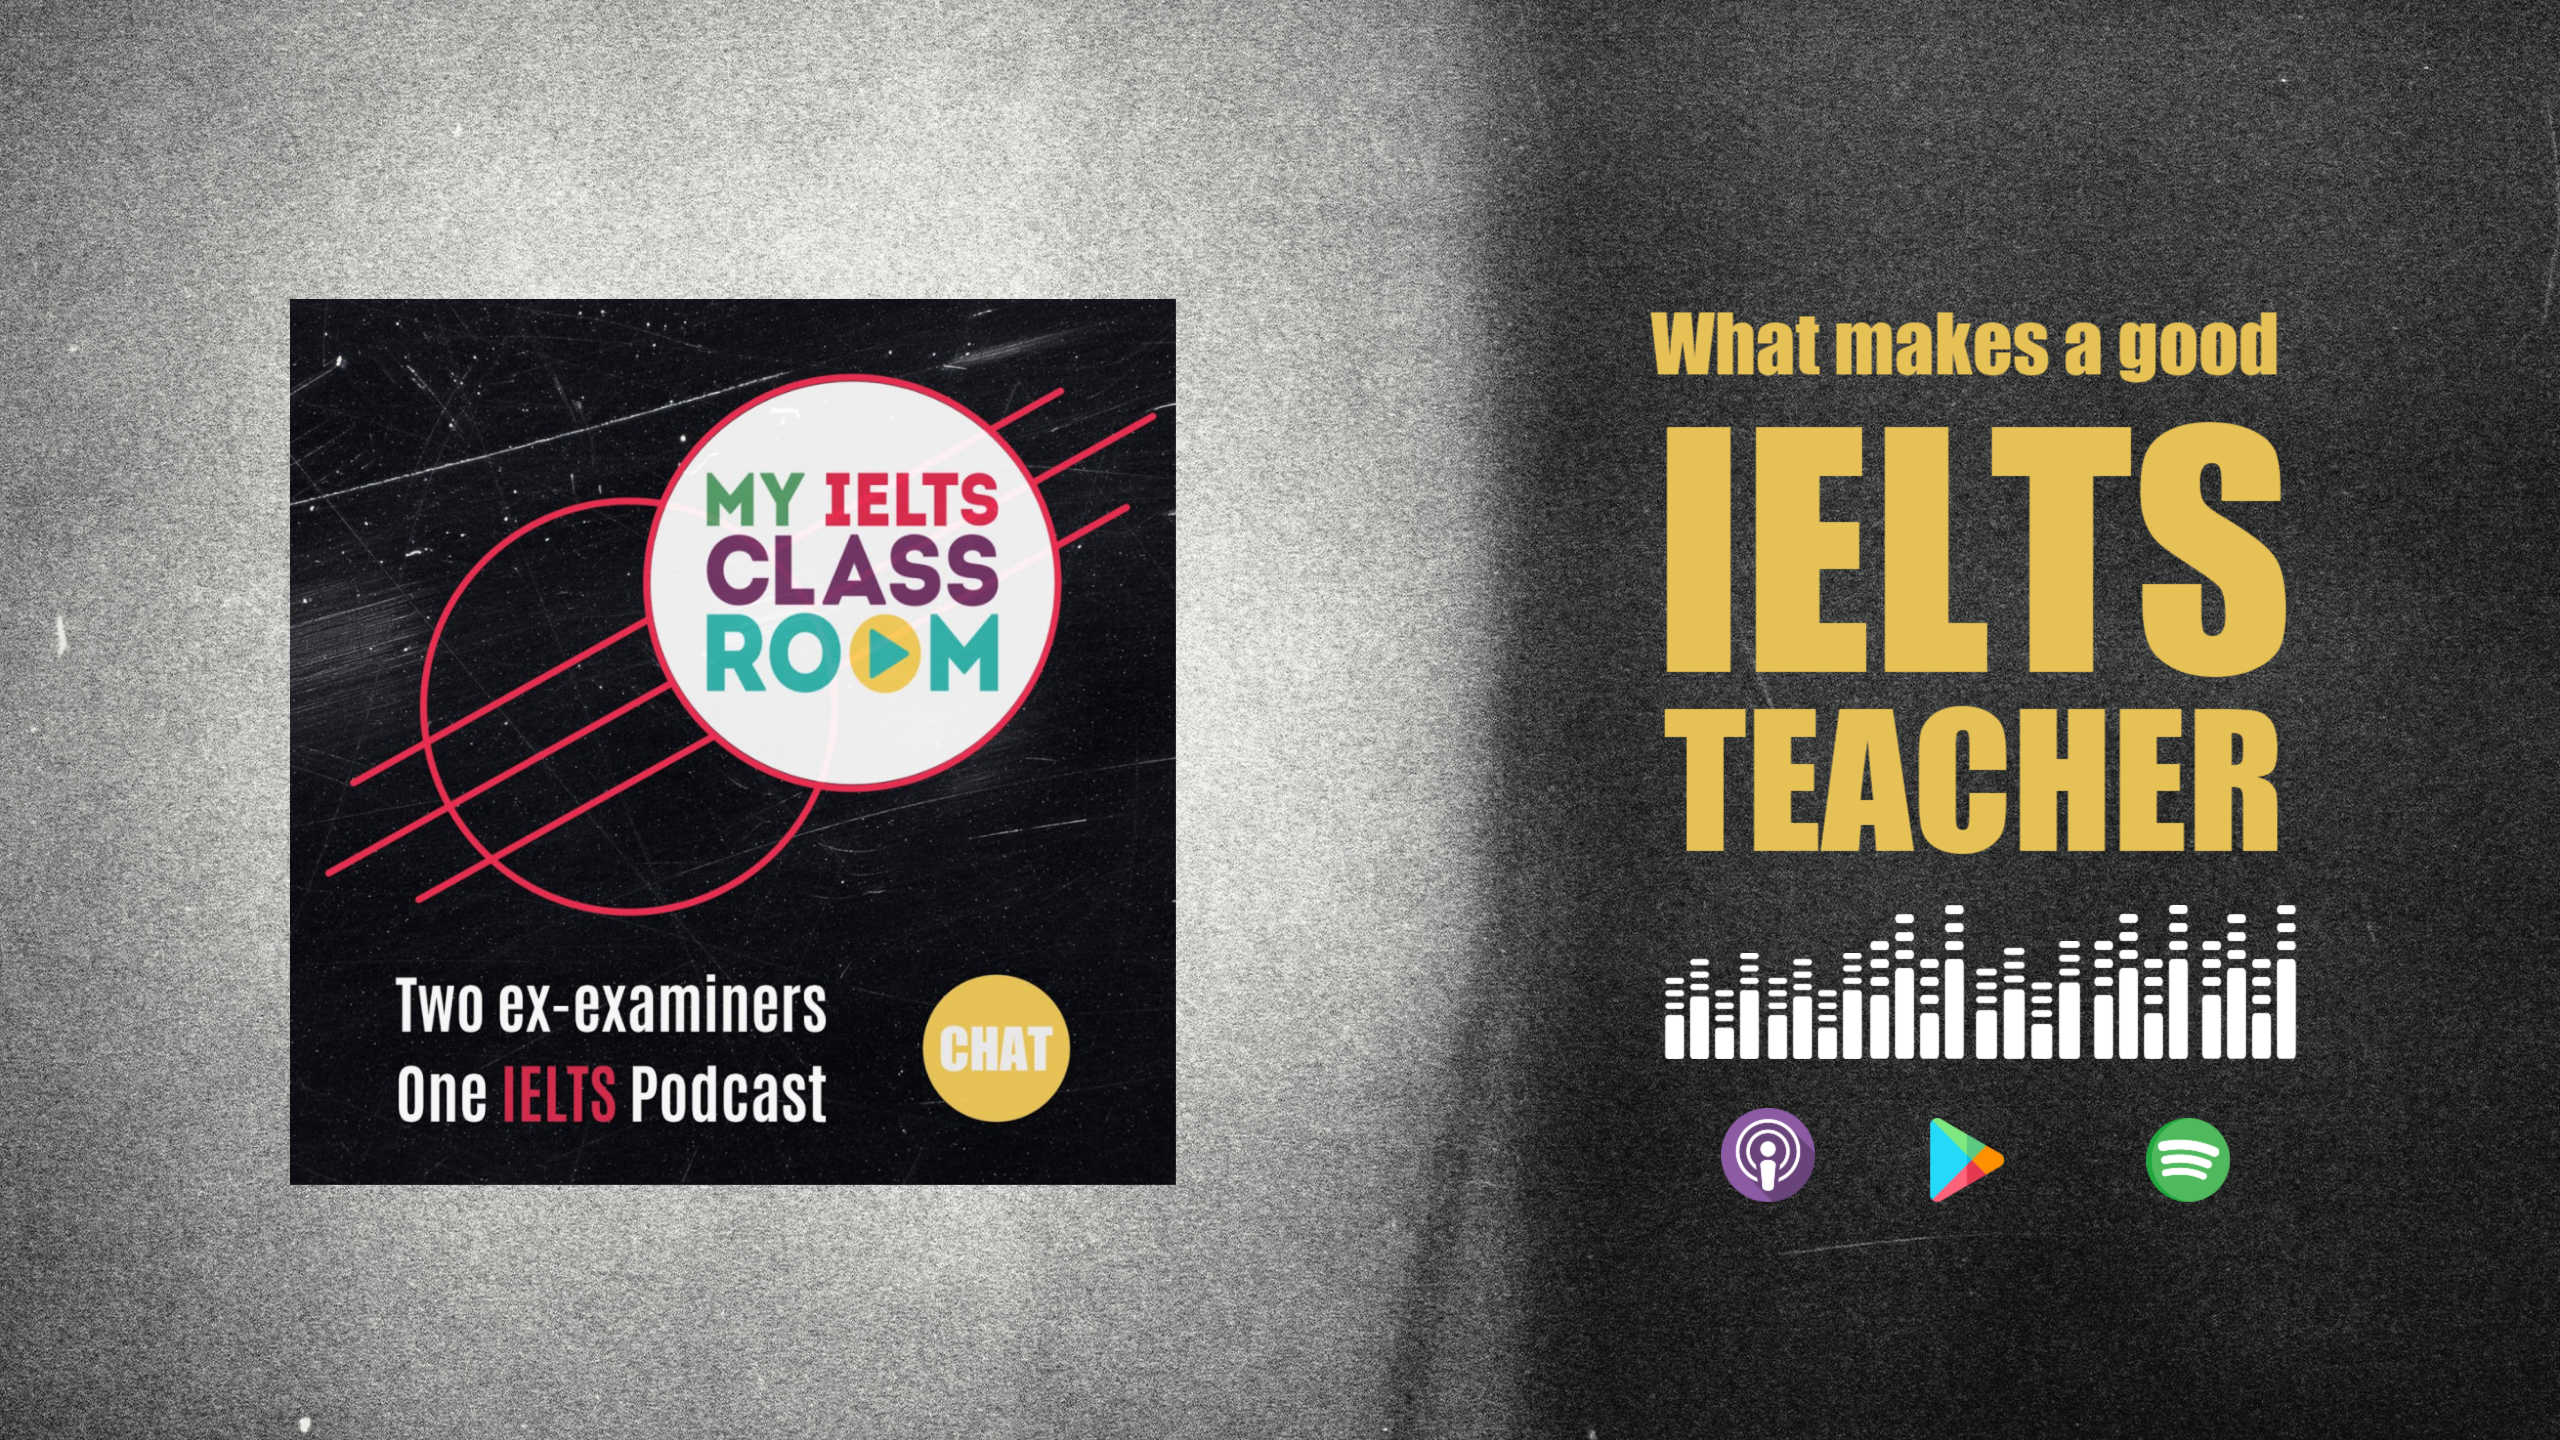 The My IELTS podcast logo site next to the words what makes a good IELTS teacher